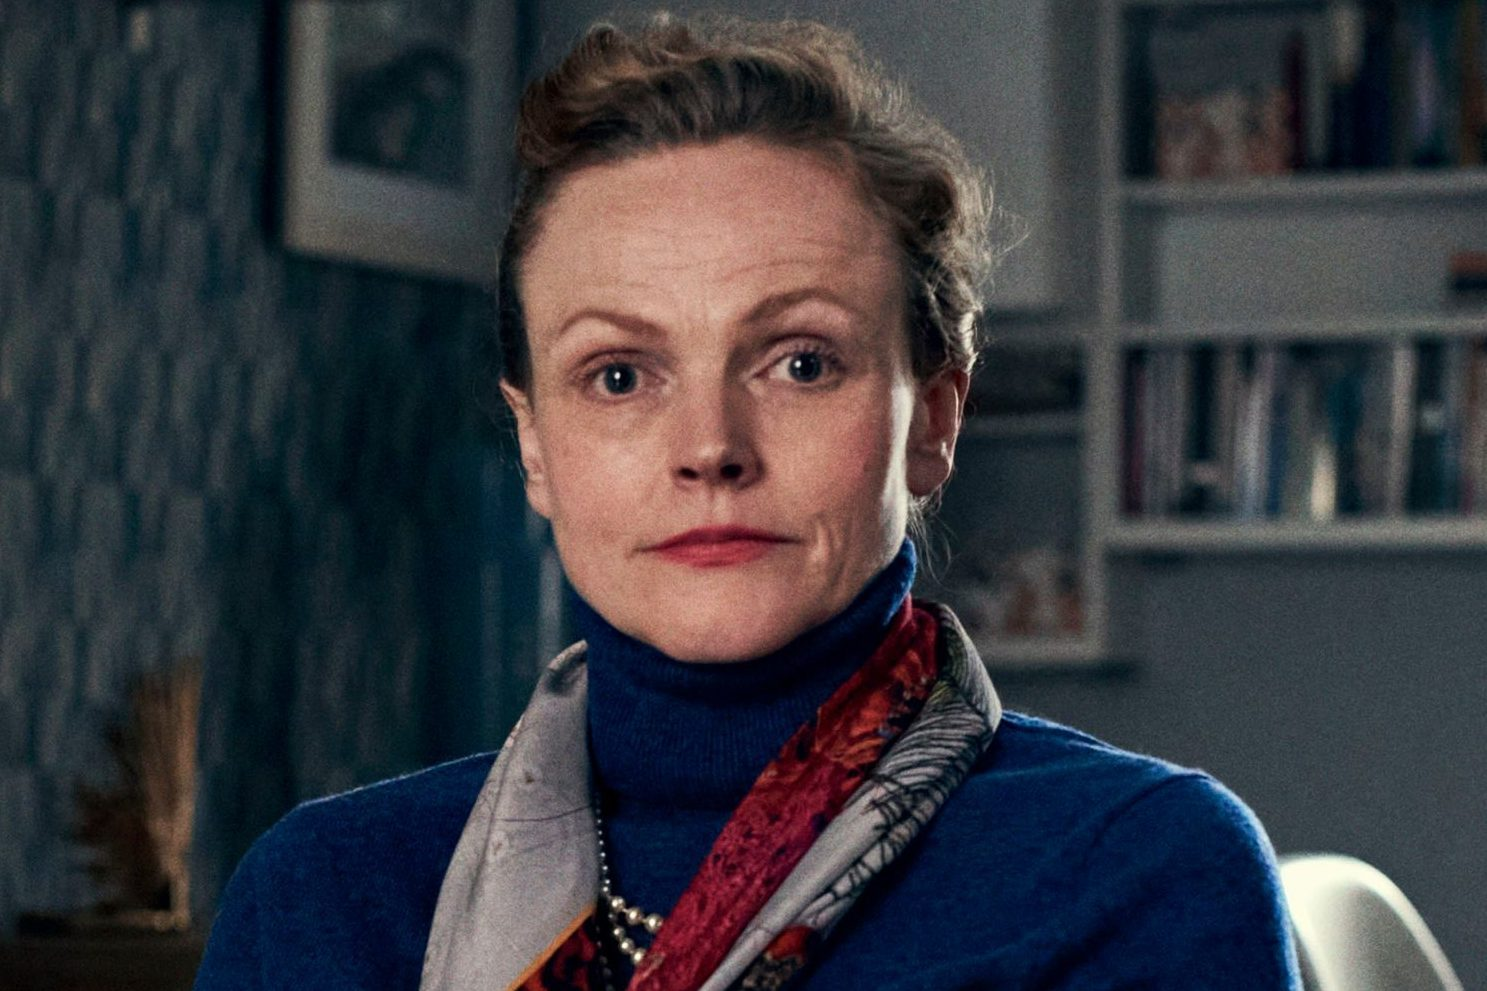 Maxine Peake as Alan Bennett's Miss Fozzard